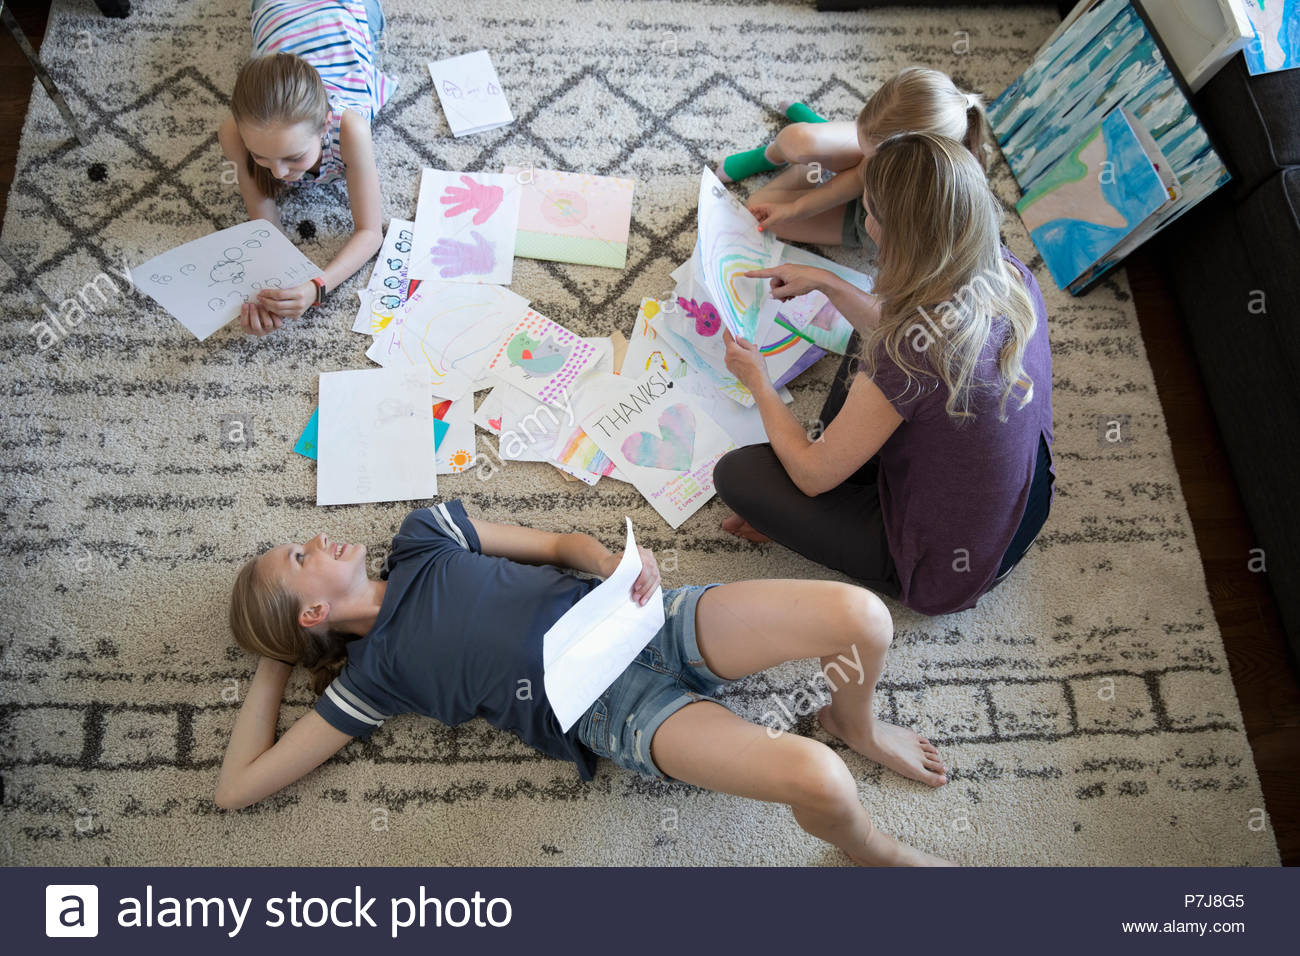 Mother and daughters looking at drawings on living room floor - Stock Image